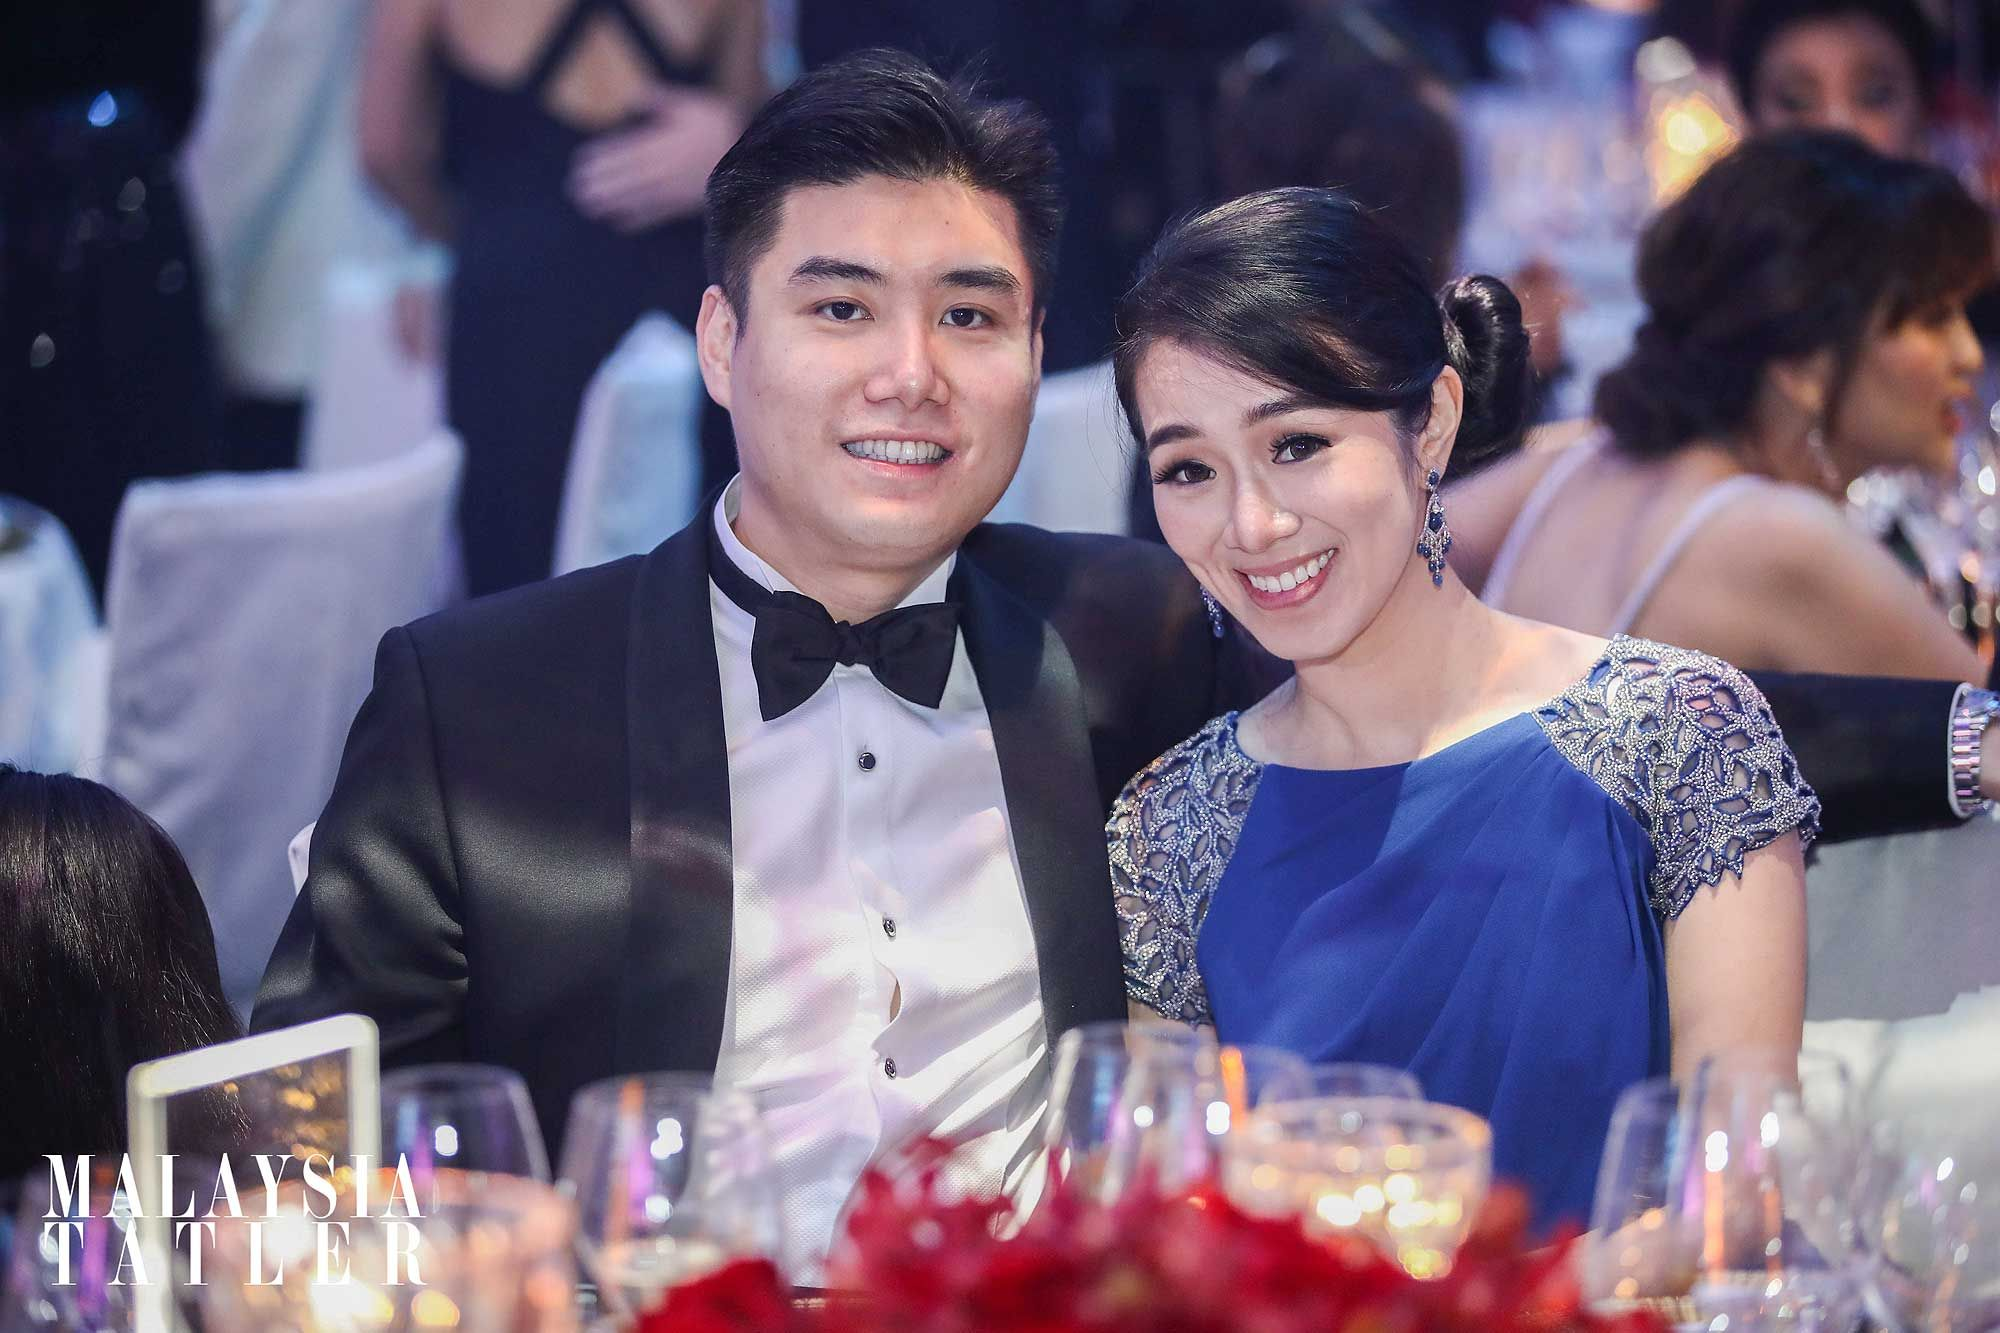 Law Wai Cheong and Diani Lee